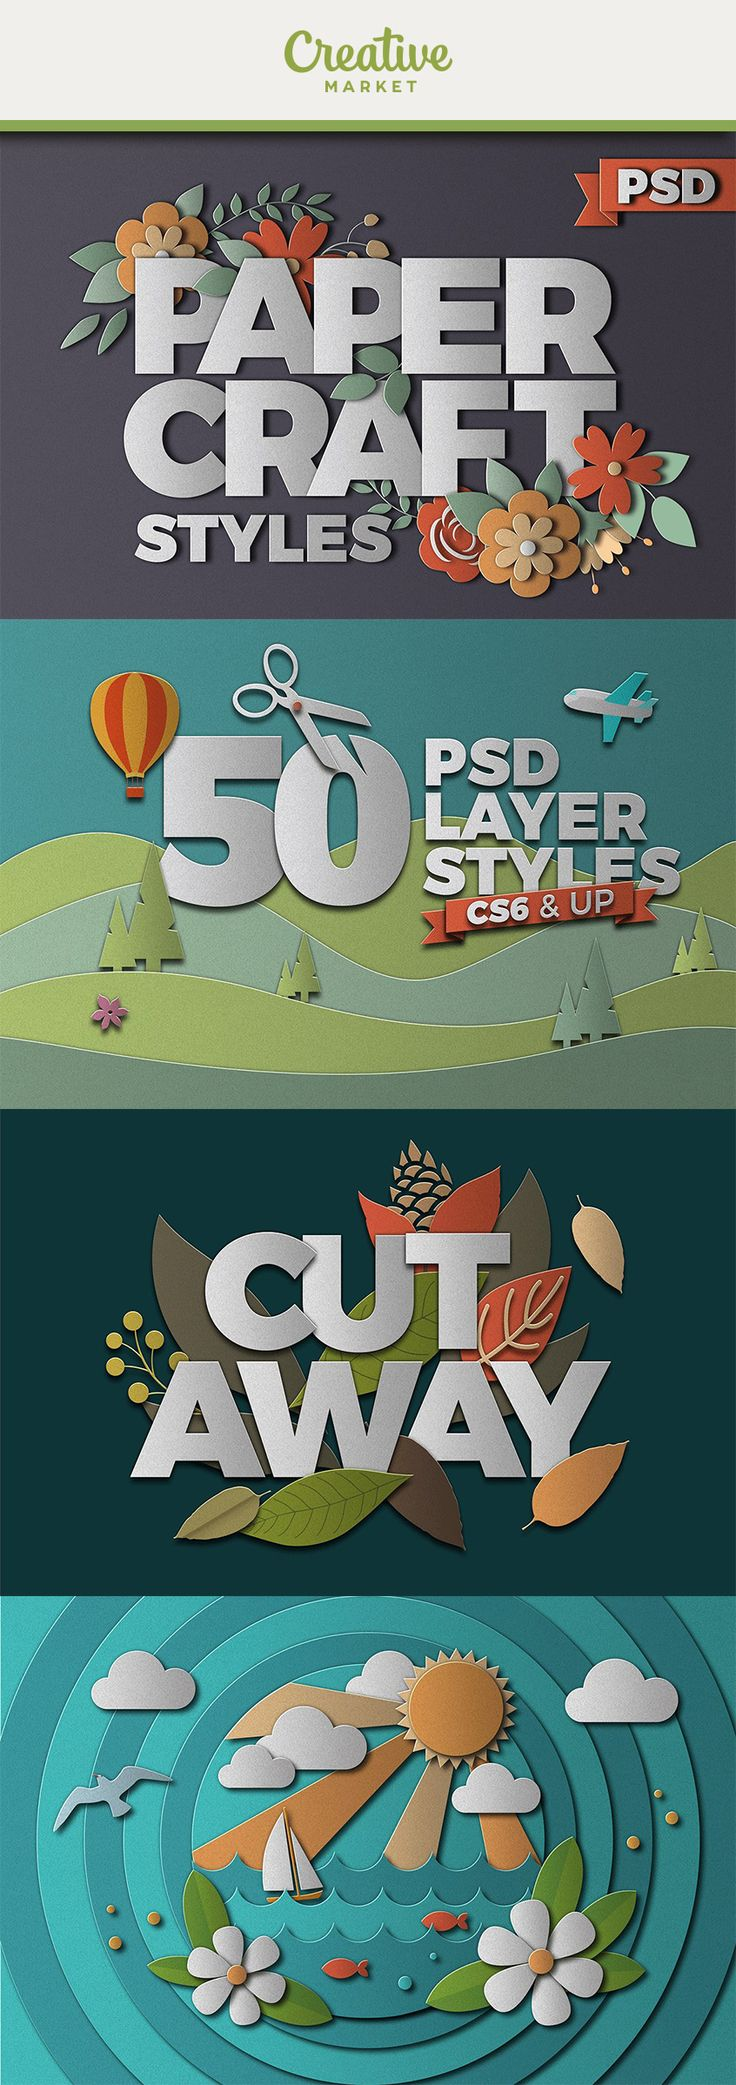 #affiliate Turn your designs into beautiful paper collages in photoshop with one click!Includes 50 paper styles, plus one overlay style to instantly turn your designs to paper. Requirements: Photoshop CS6 to latest CC